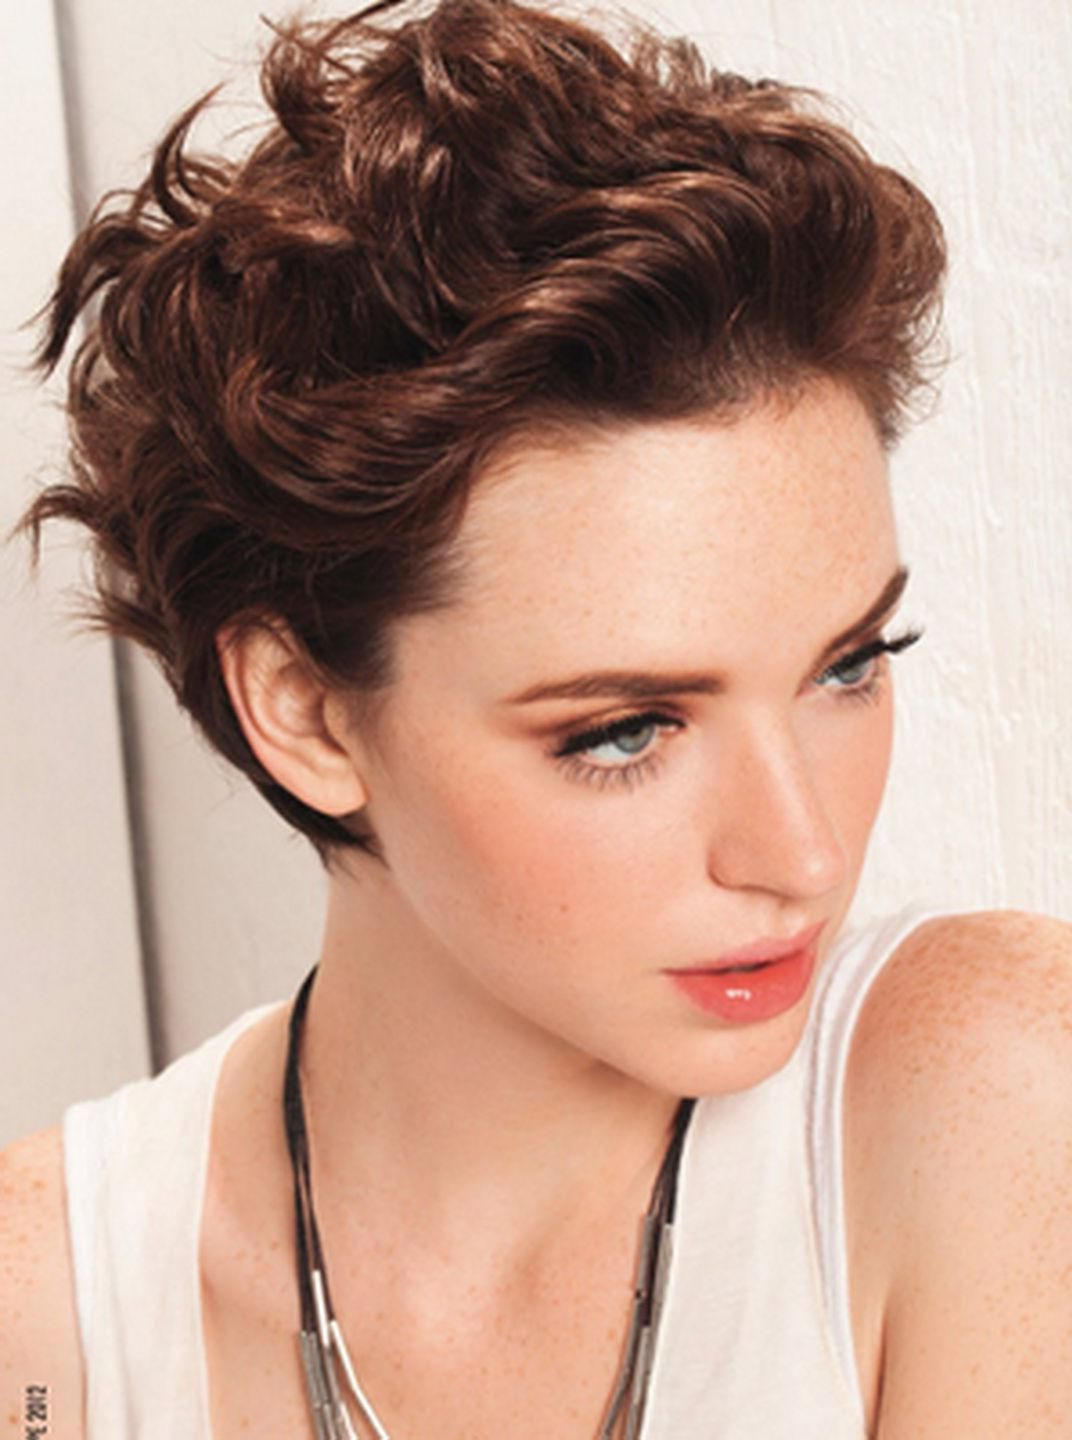 Short Hairstyles For Thick Curly Frizzy Hair Men And Woman | Short Intended For Short Haircuts For Thick Curly Frizzy Hair (View 6 of 25)